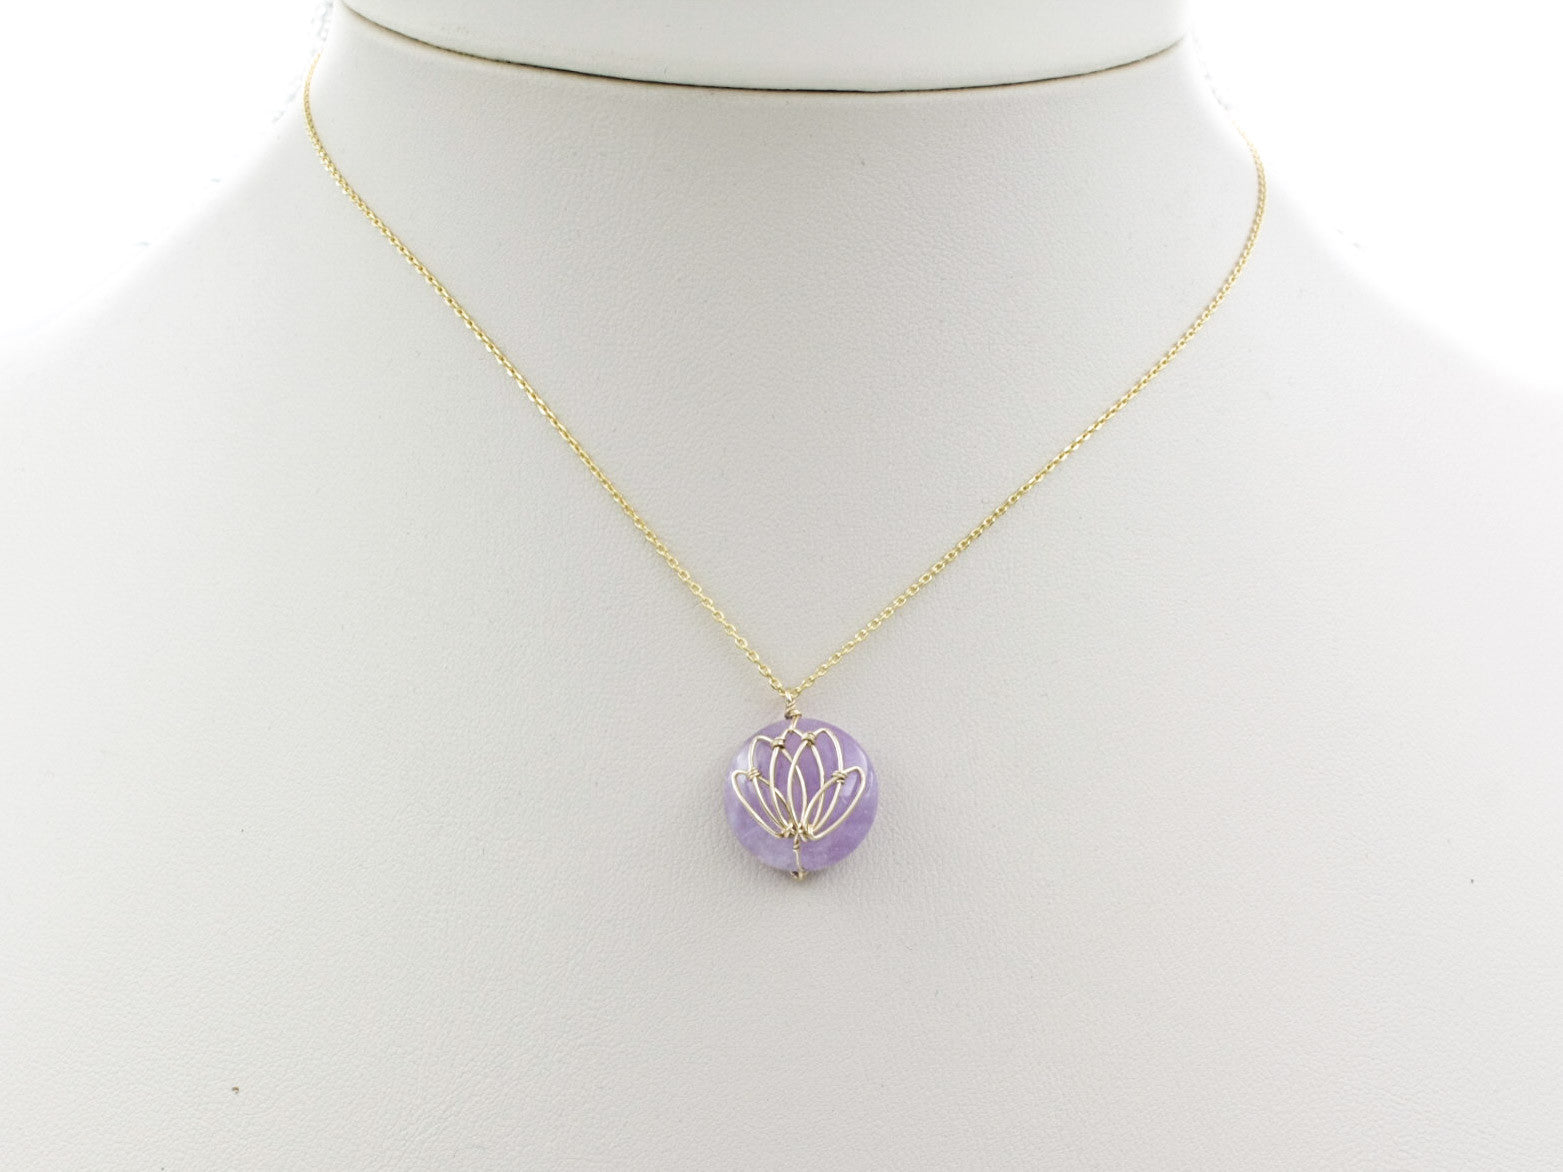 Semi precious lotus necklace yun boutique serene lotus necklace in gold mozeypictures Choice Image